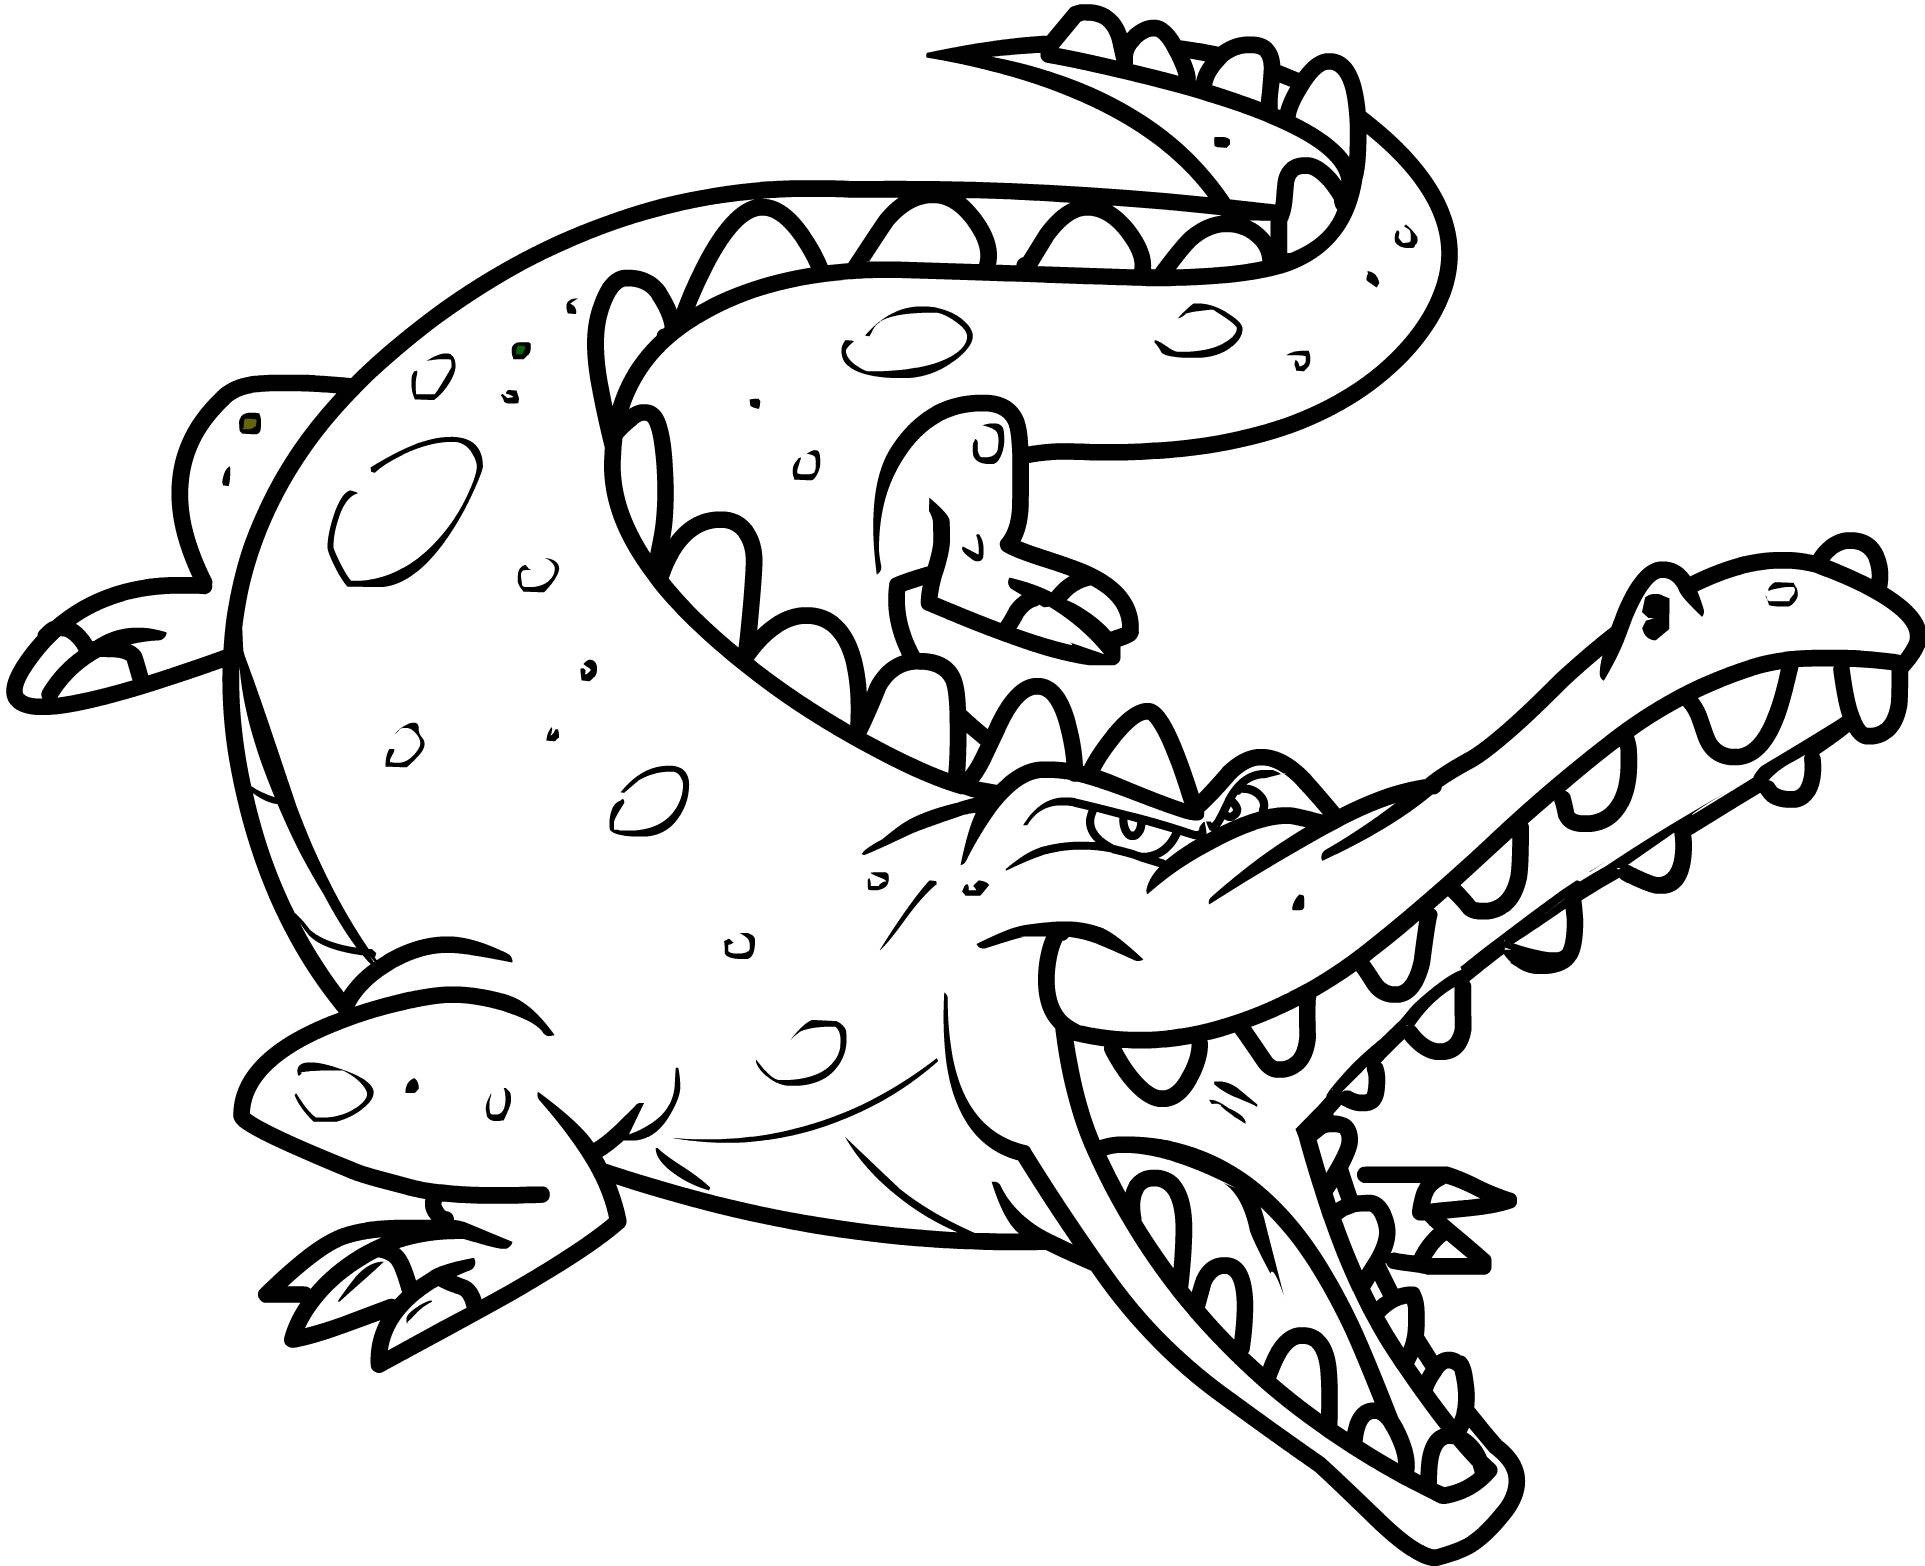 Crocodile coloring #2, Download drawings